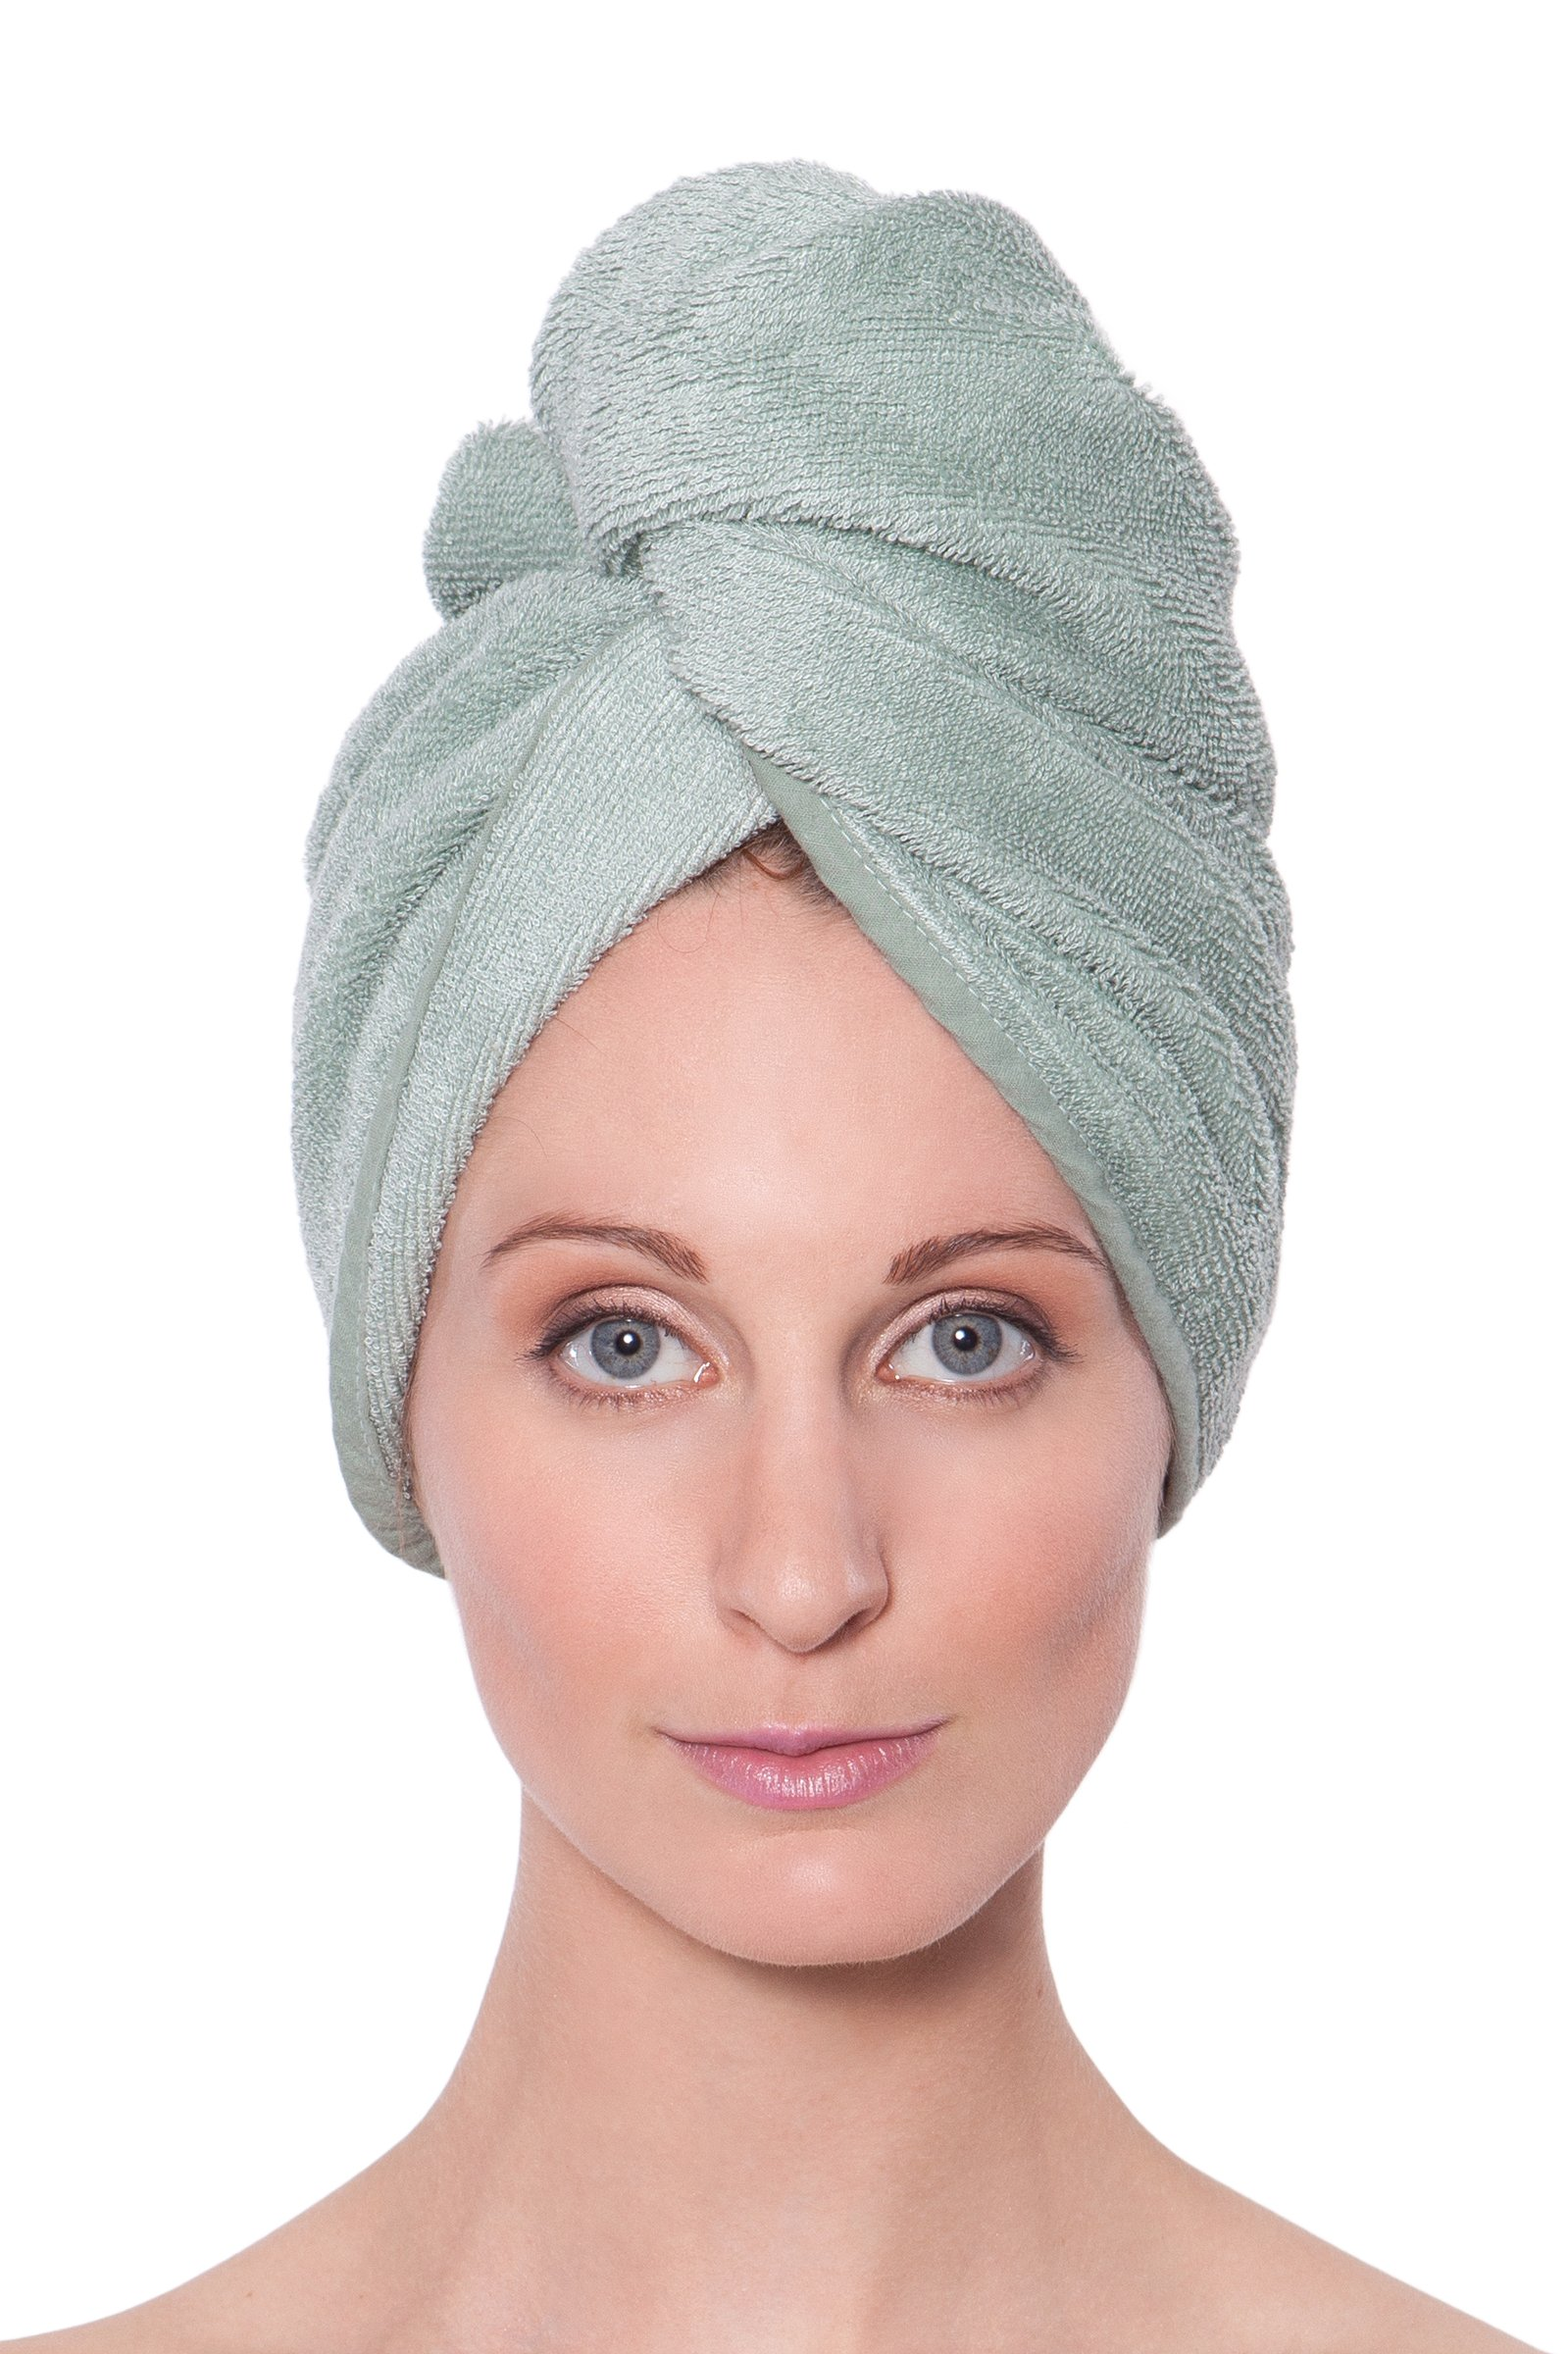 Women's Bamboo Viscose Hair Towel - Hair Drying Towel Wrap by Texere (Lily Green, Unisize) Best Mothers Day Gift AB0101-LGN-U